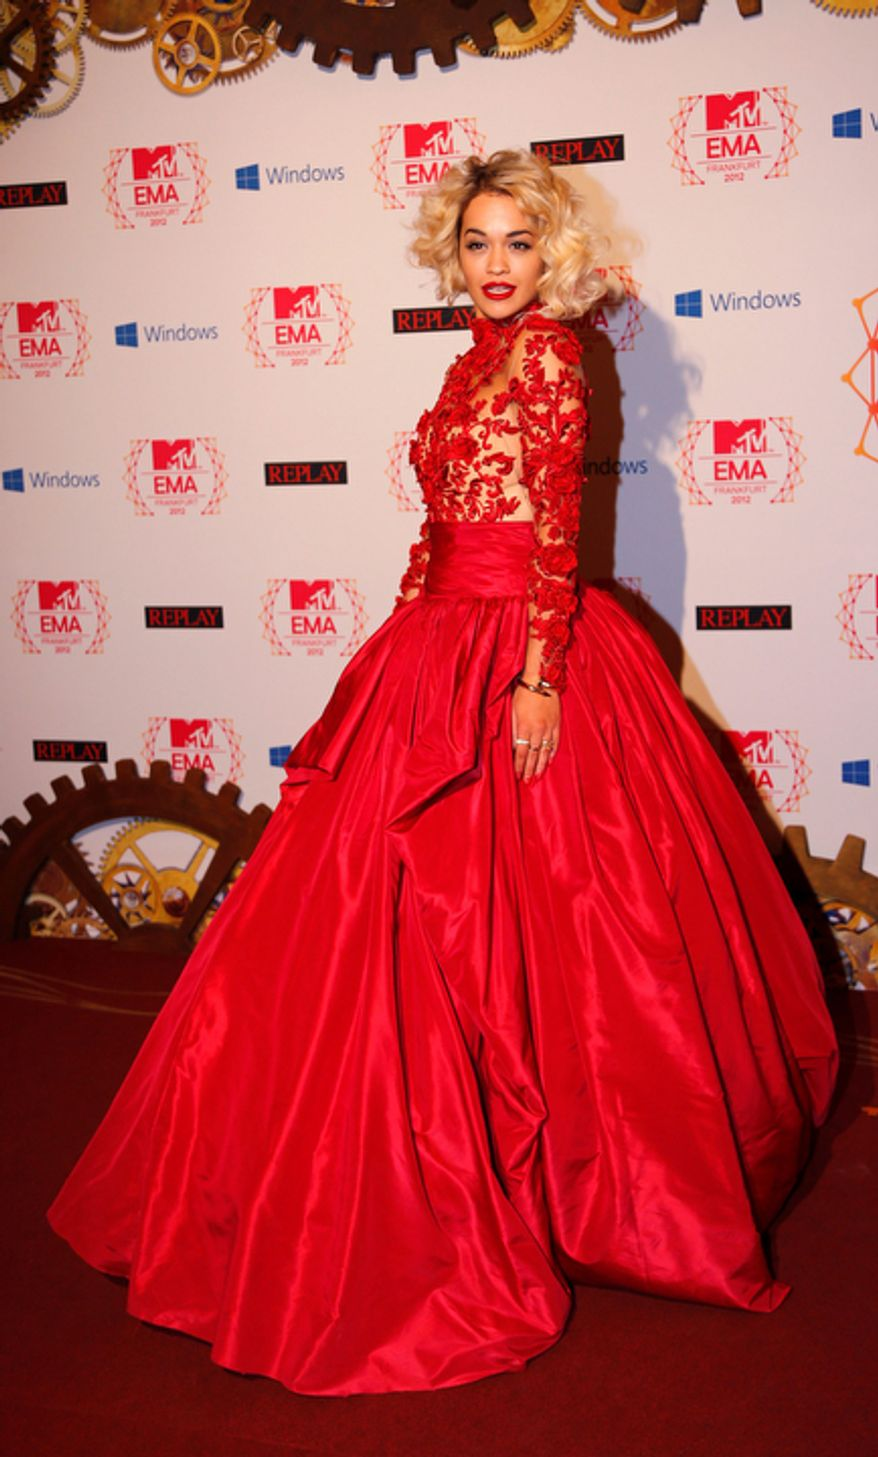 British singer Rita Ora arrives on the red carpet of the 2012 MTV European Music Awards show at the Festhalle in Frankfurt, central Germany, Sunday, Nov. 11, 2012. (AP Photo/Frank Augstein)